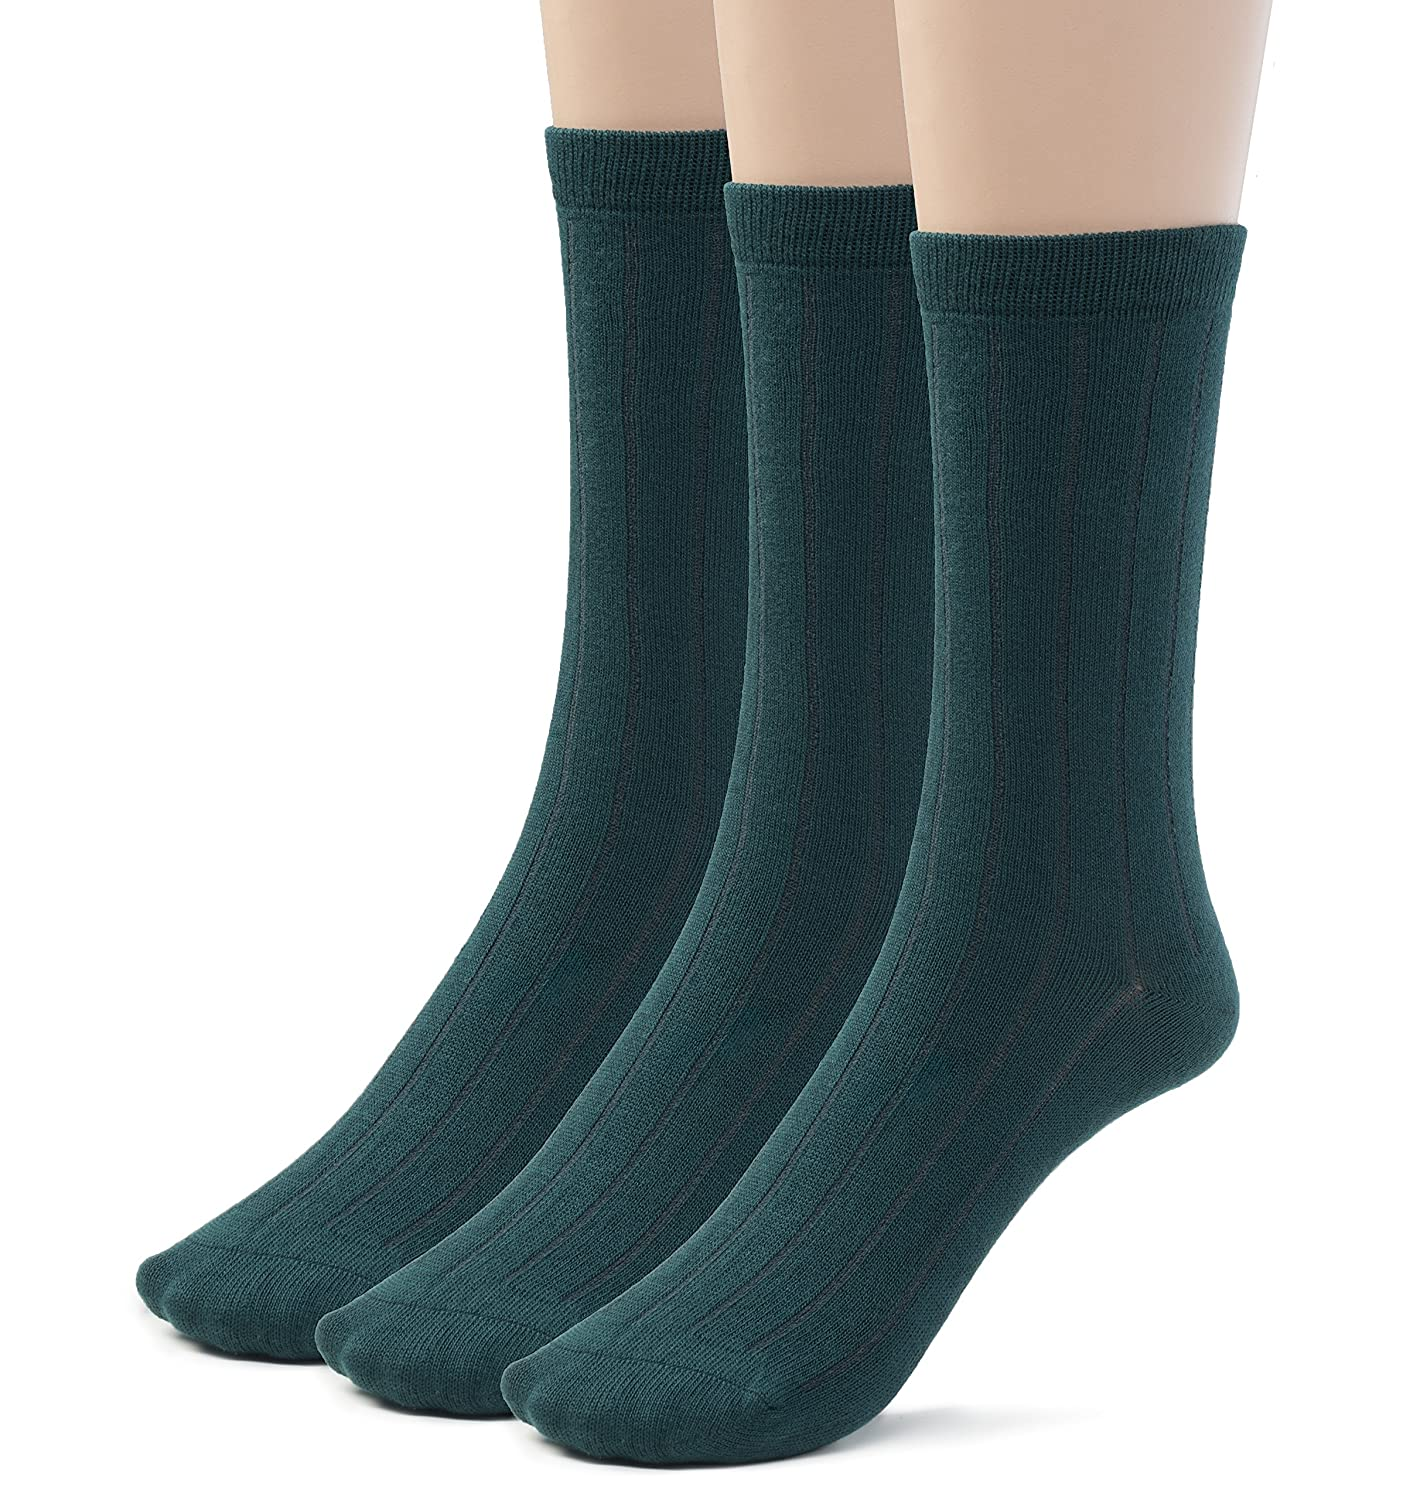 Silky Toes 3 or 6 Pk Bamboo Ribbed Boys Girls Crew Socks, Casual School Uniform Basic Socks